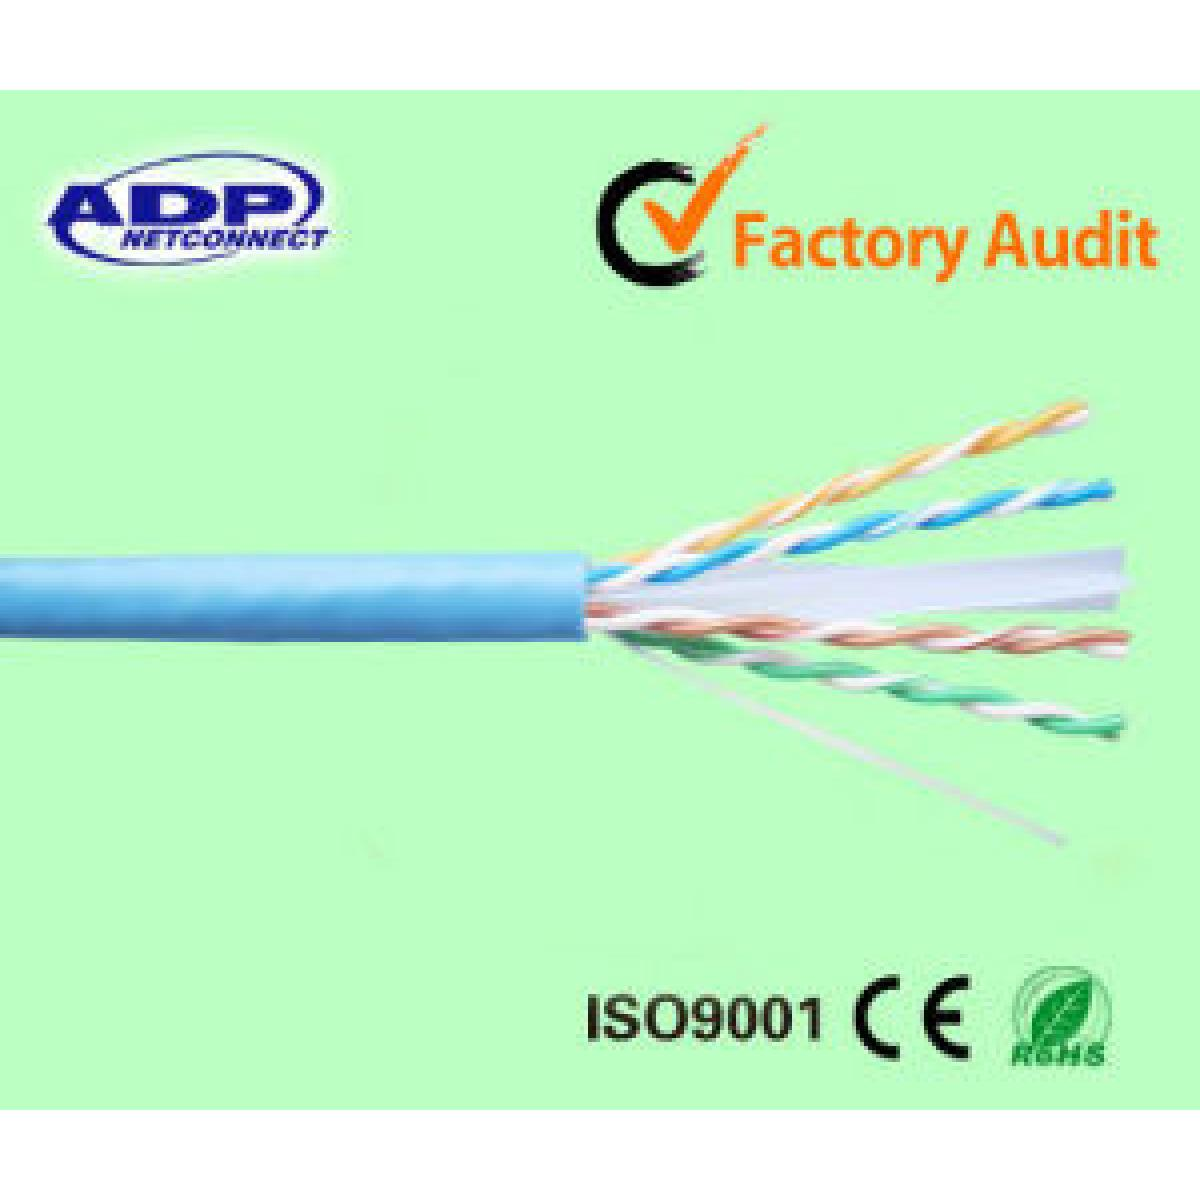 Adp Cat 6 Internet Cable 300 Meter Wiring